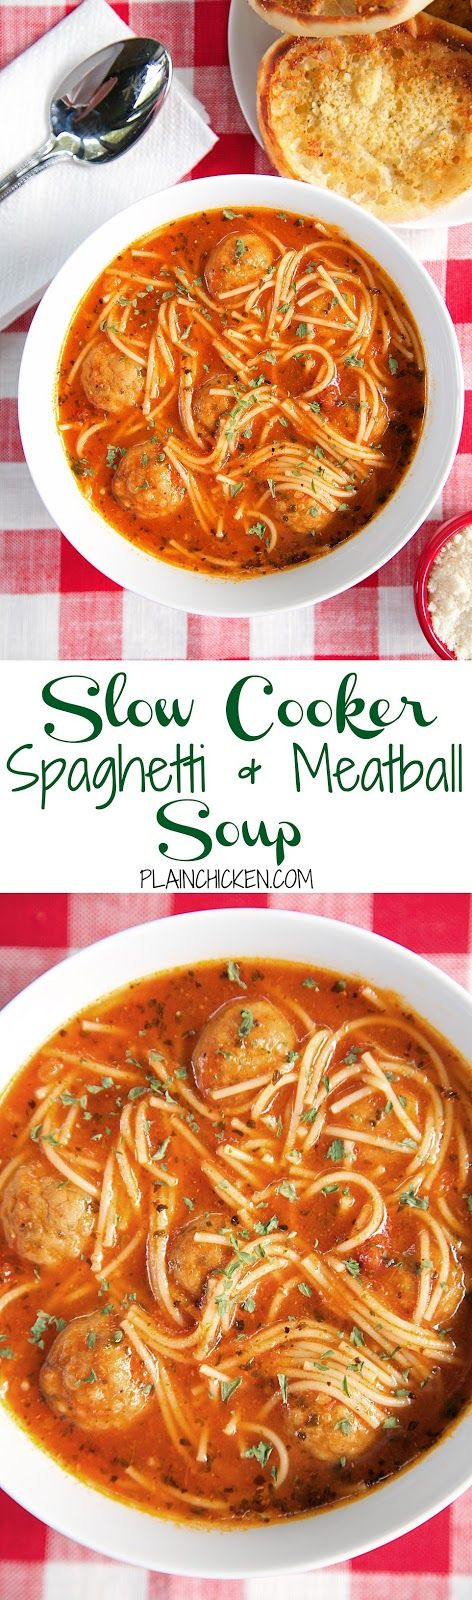 {Slow Cooker} Spaghetti and Meatball Soup | Plain Chicken®